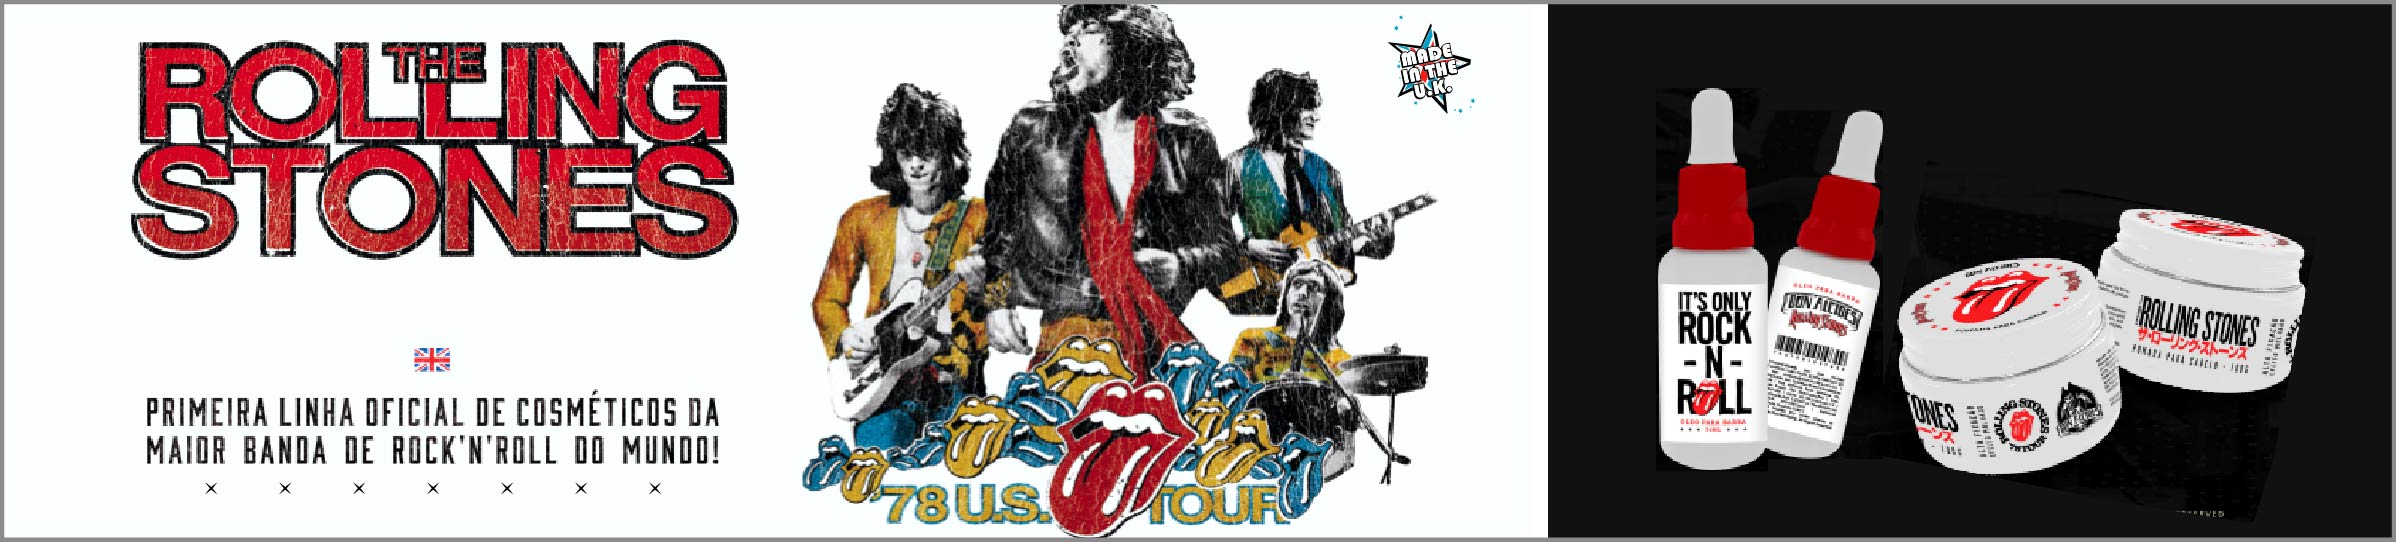 Linha Rolling Stones - Don Alcides